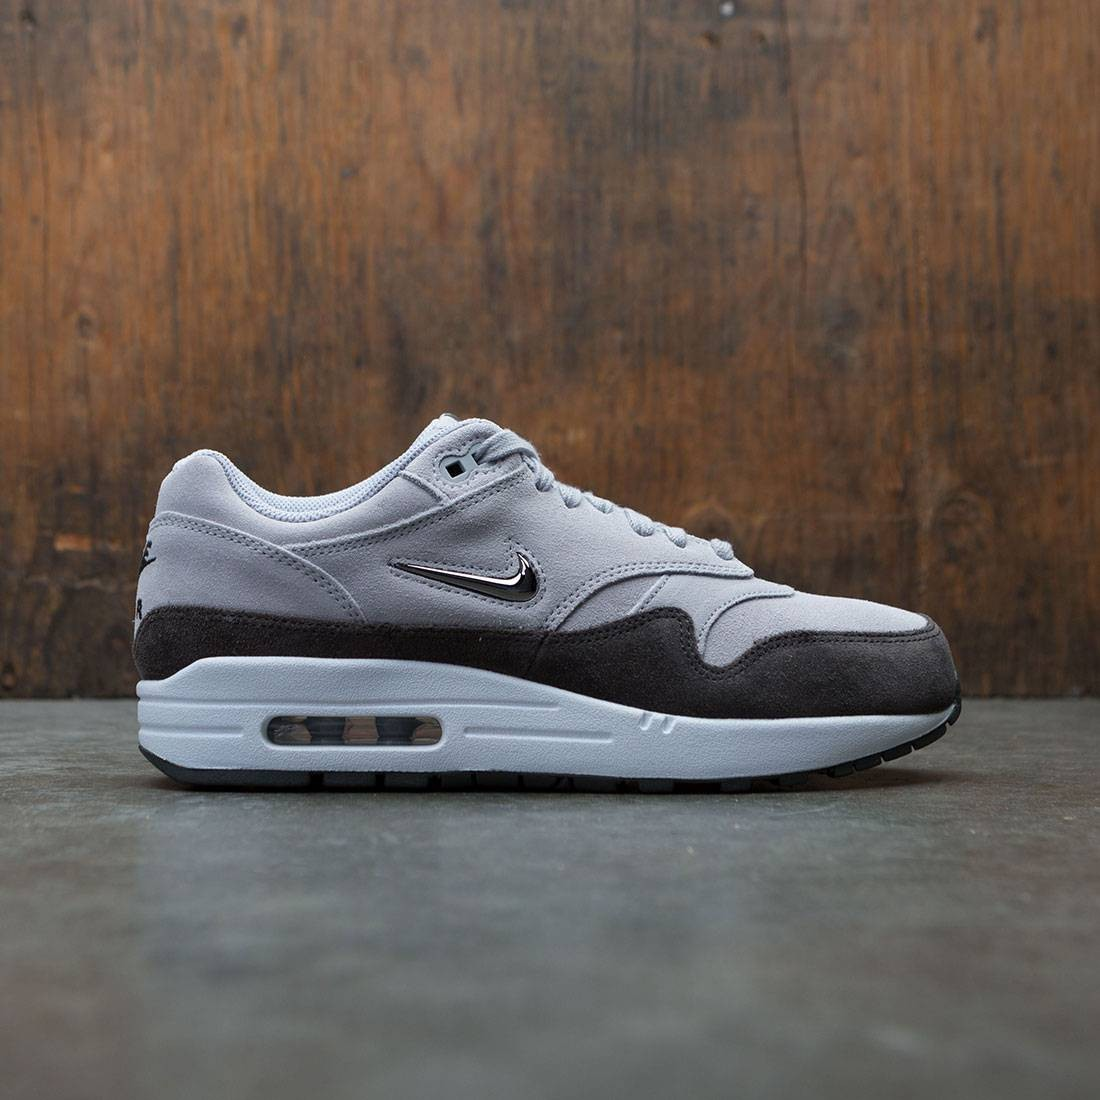 d1b6ead7300 ... closeout nike women air max 1 premium sc grey wolf grey mtlc pewter  deep pewter white